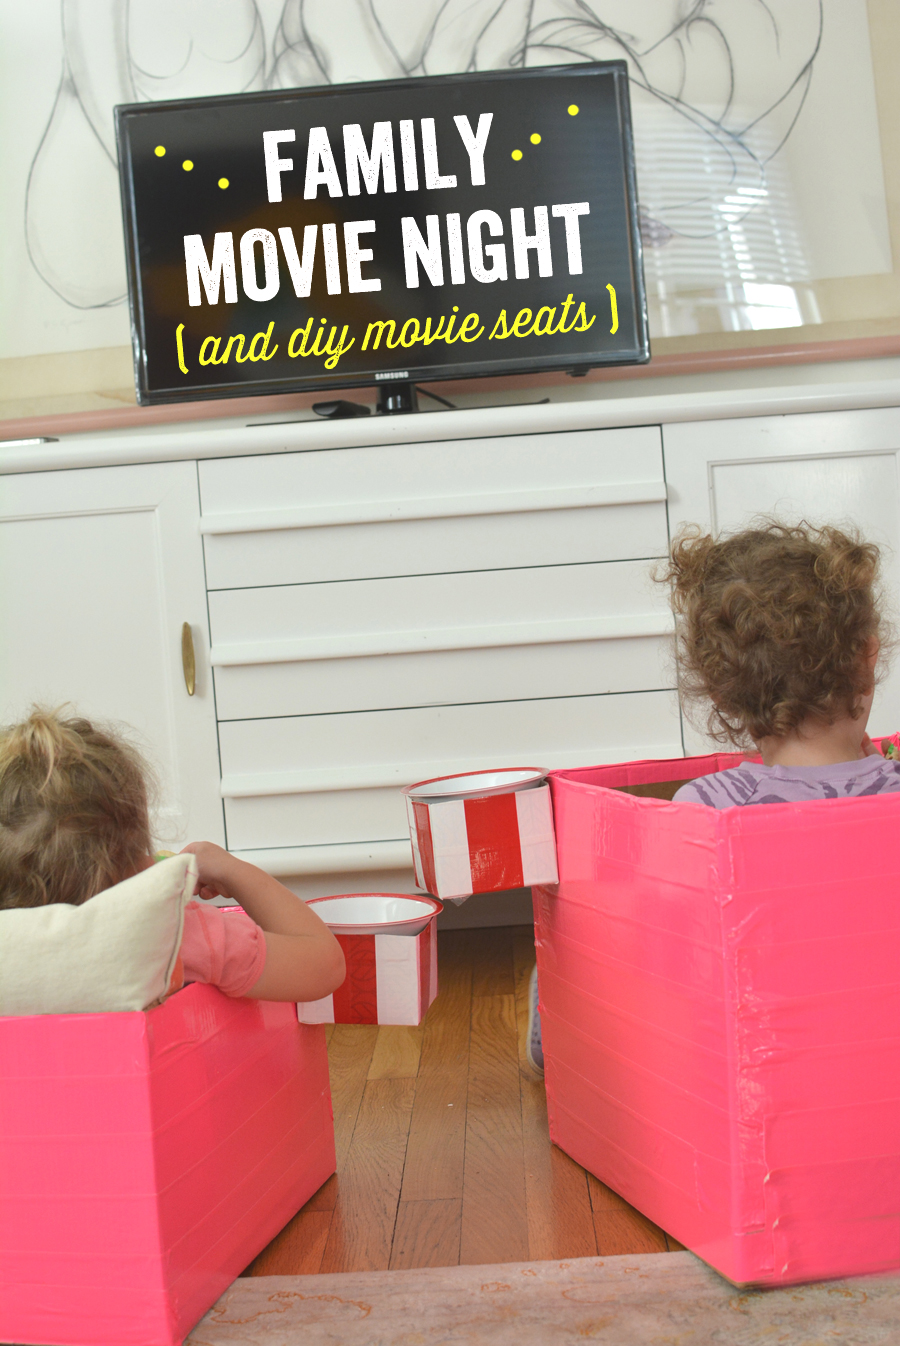 How cute are these movie seat?? I love these!